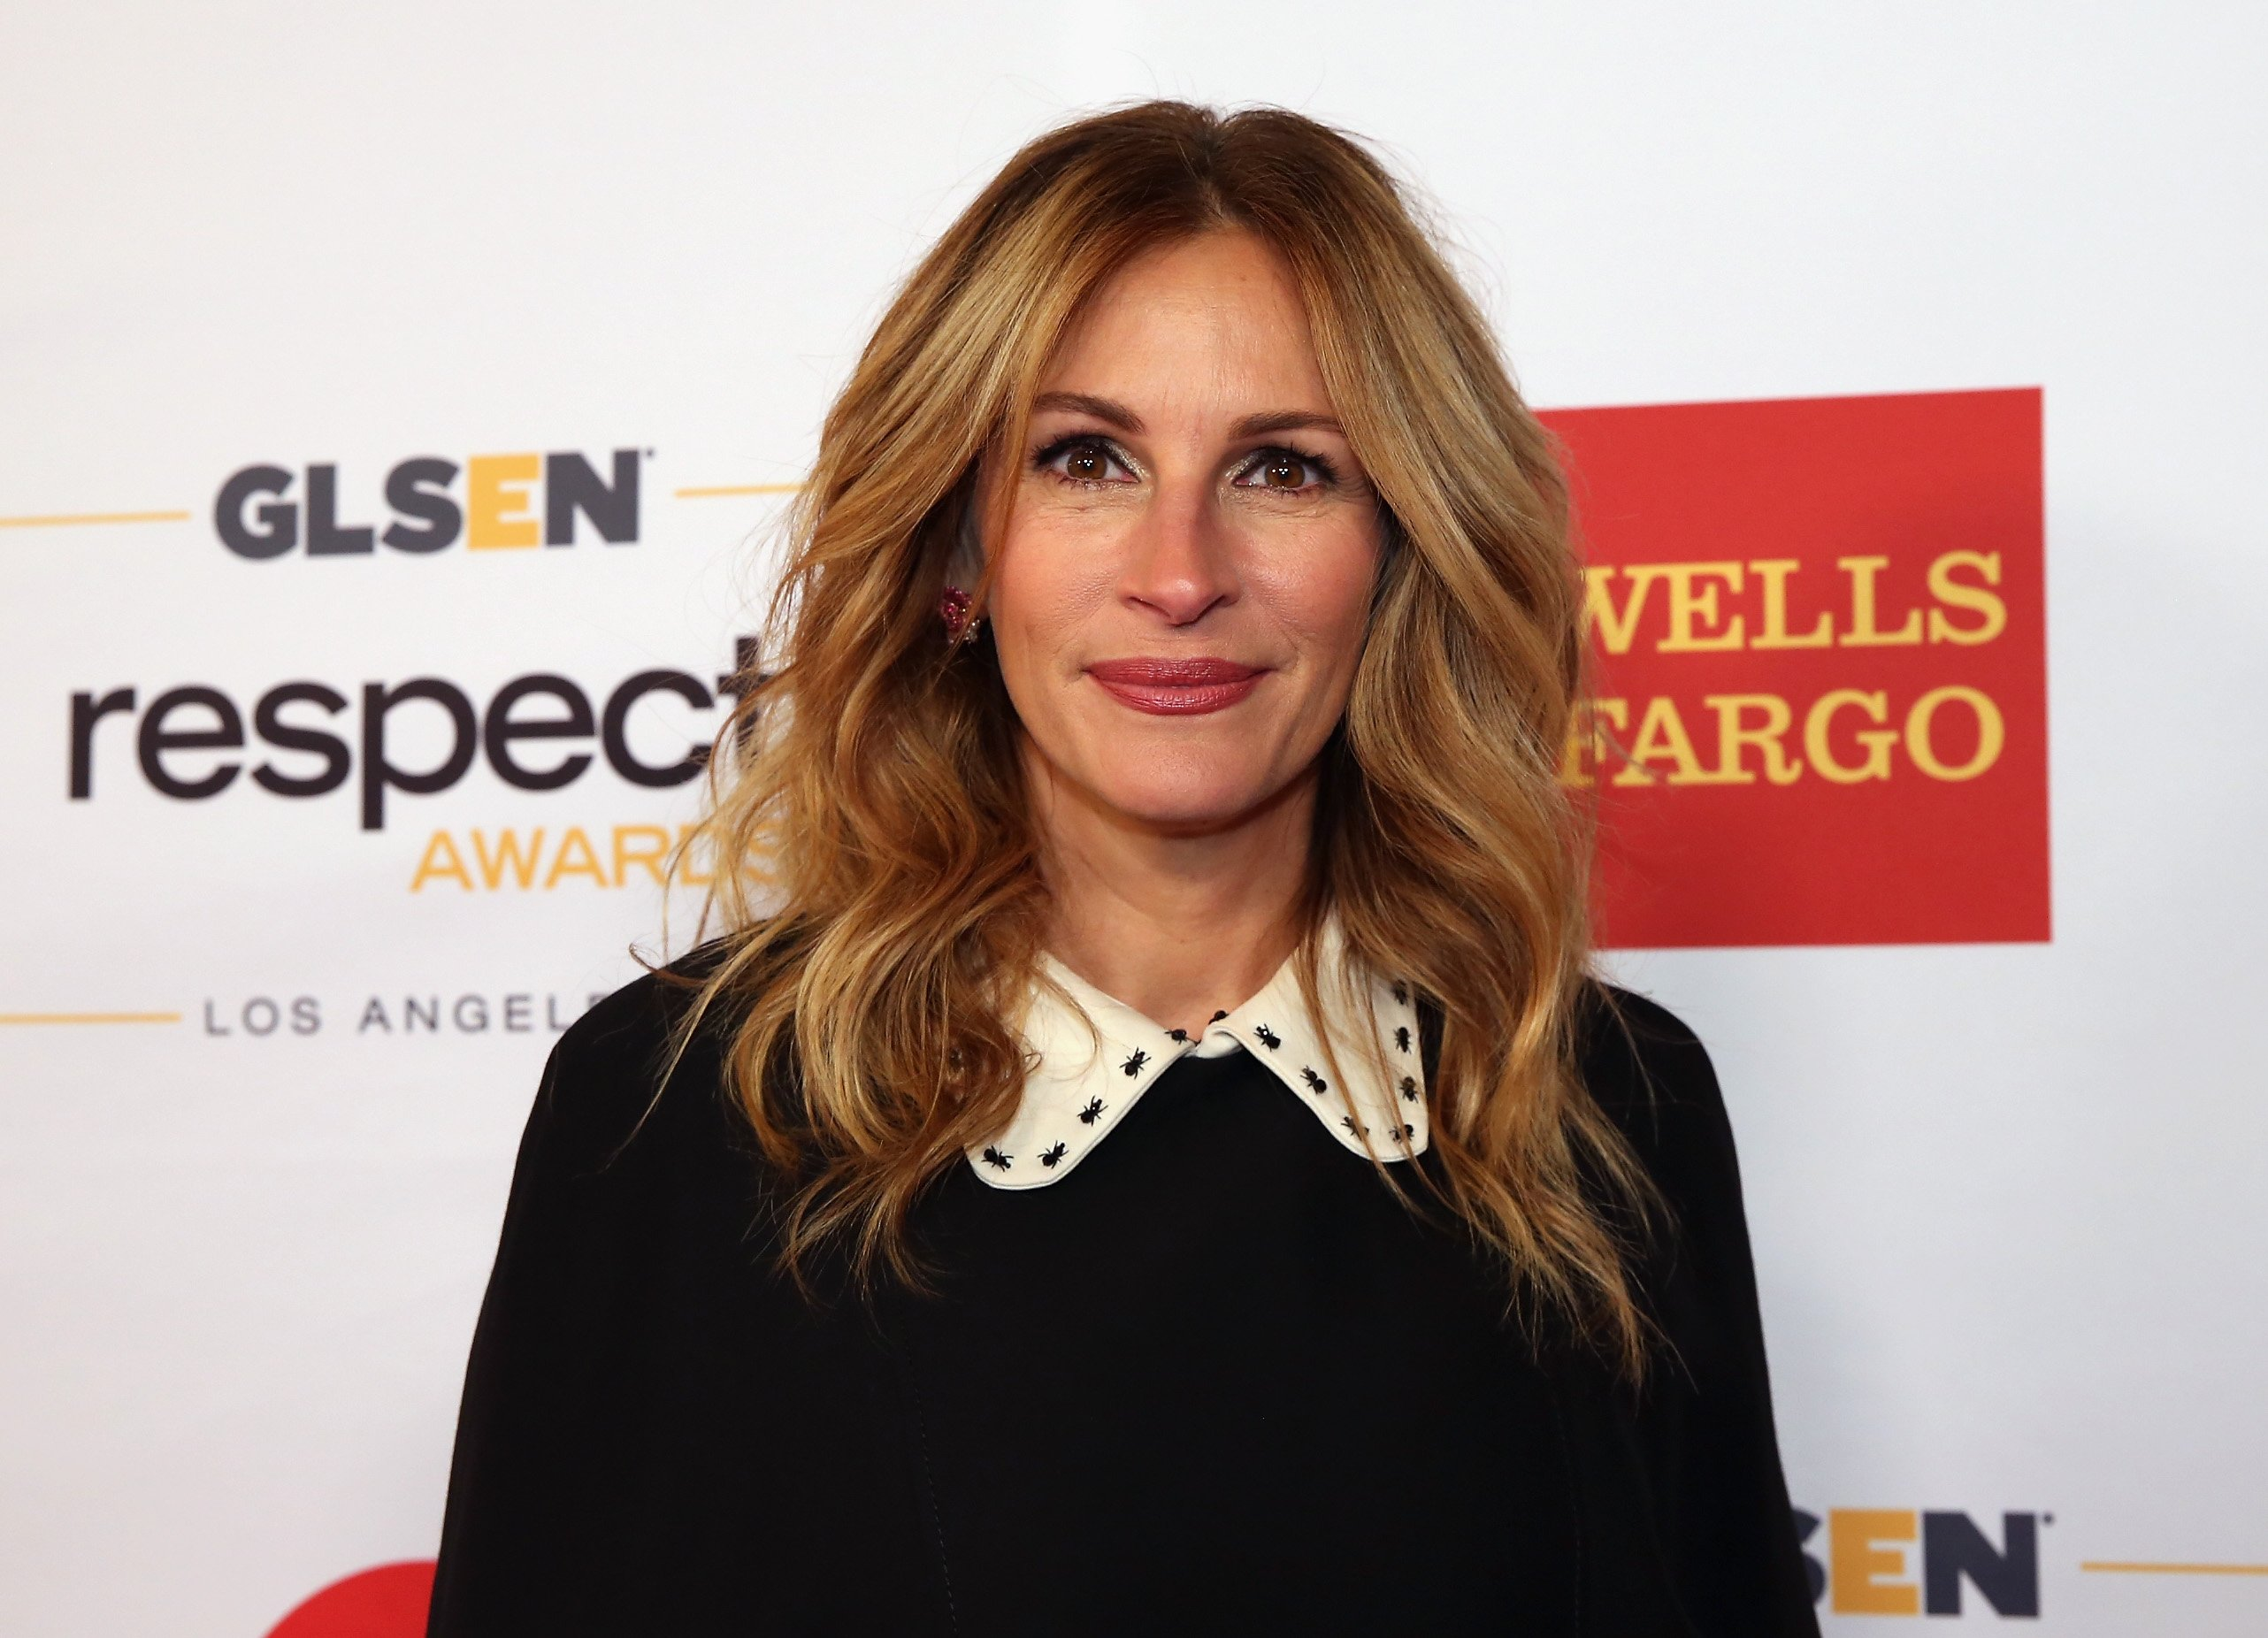 Julia Roberts attends the 2016 GLSEN Respect Awards - Los Angeles at the Beverly Wilshire Four Seasons Hotel on October 21, 2016, in Beverly Hills, California. | Getty Images.